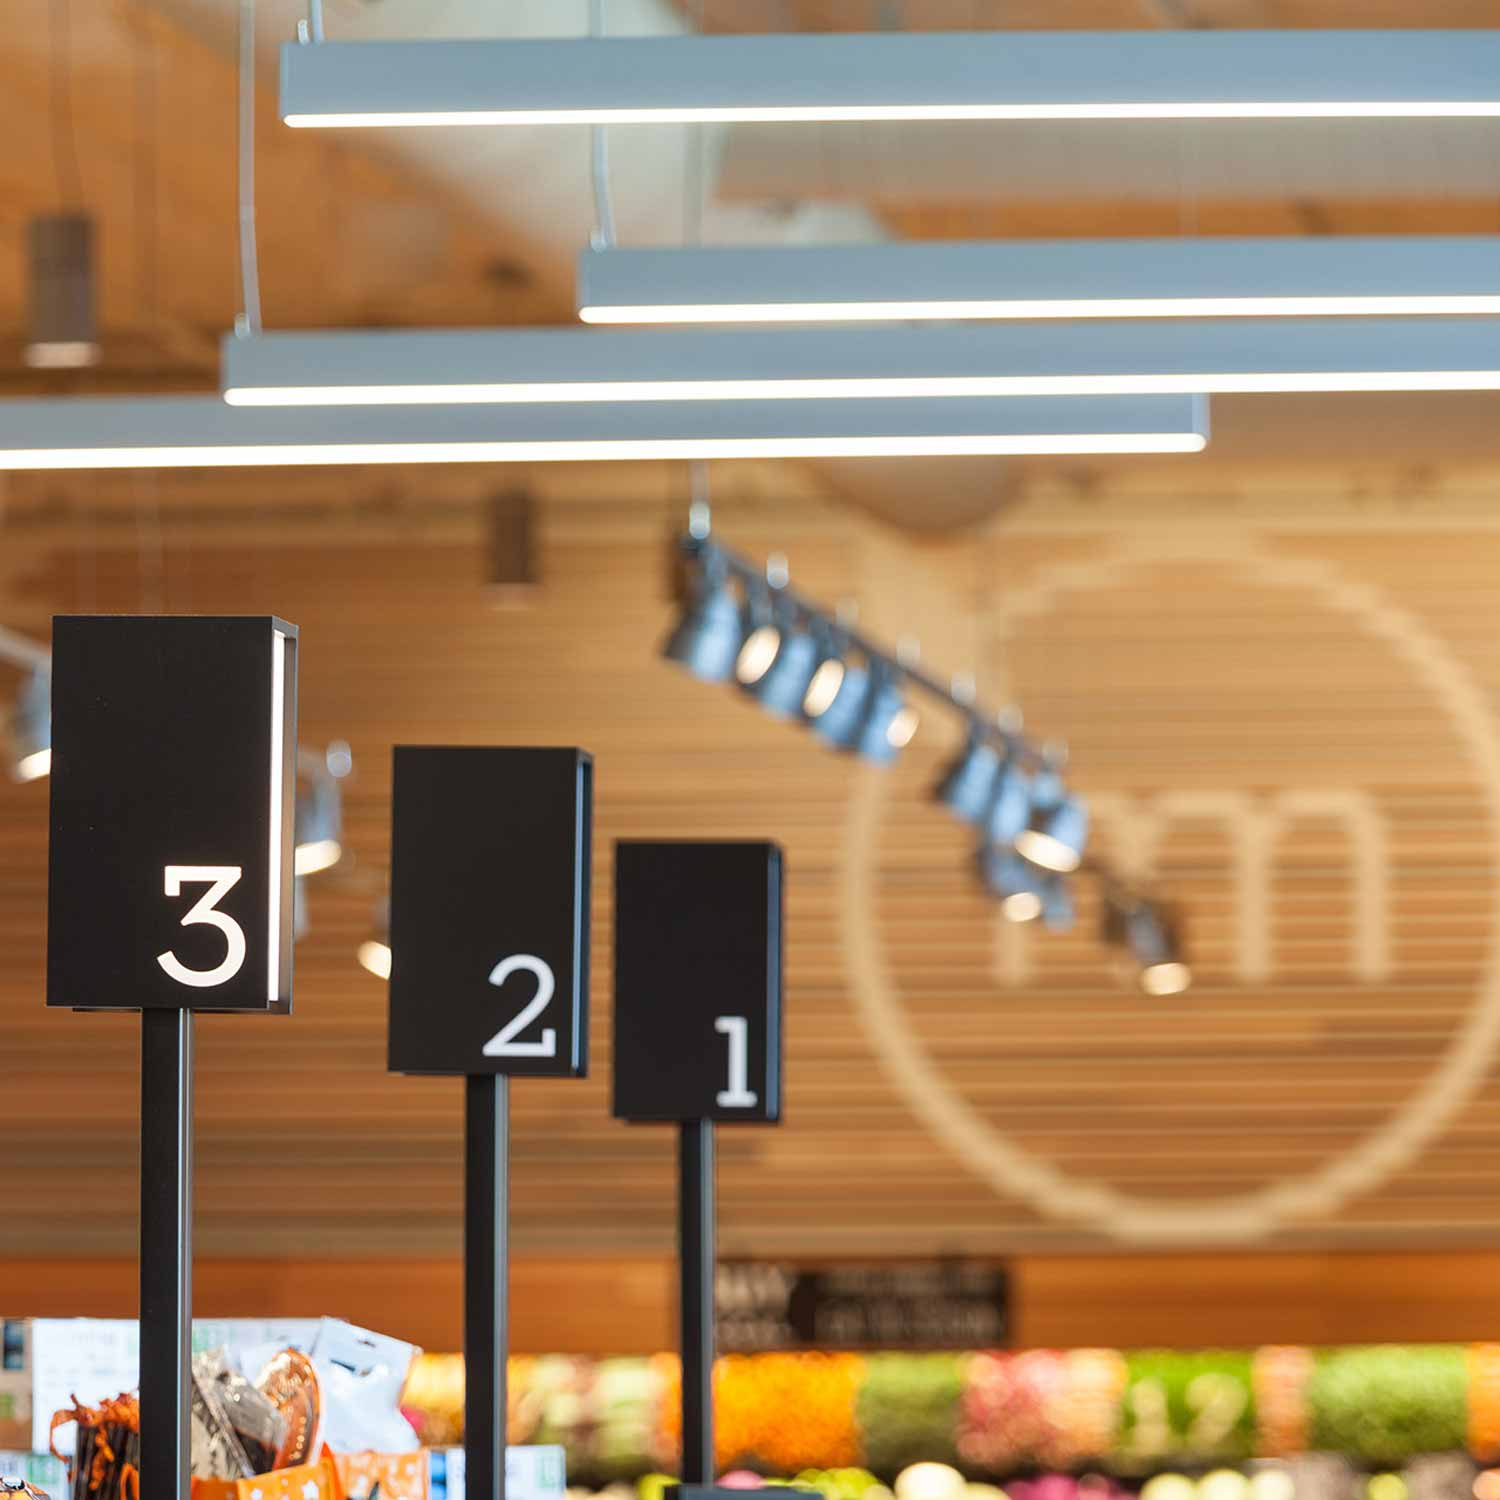 Retail design for Metropolitan Market in Sammamish, Washington